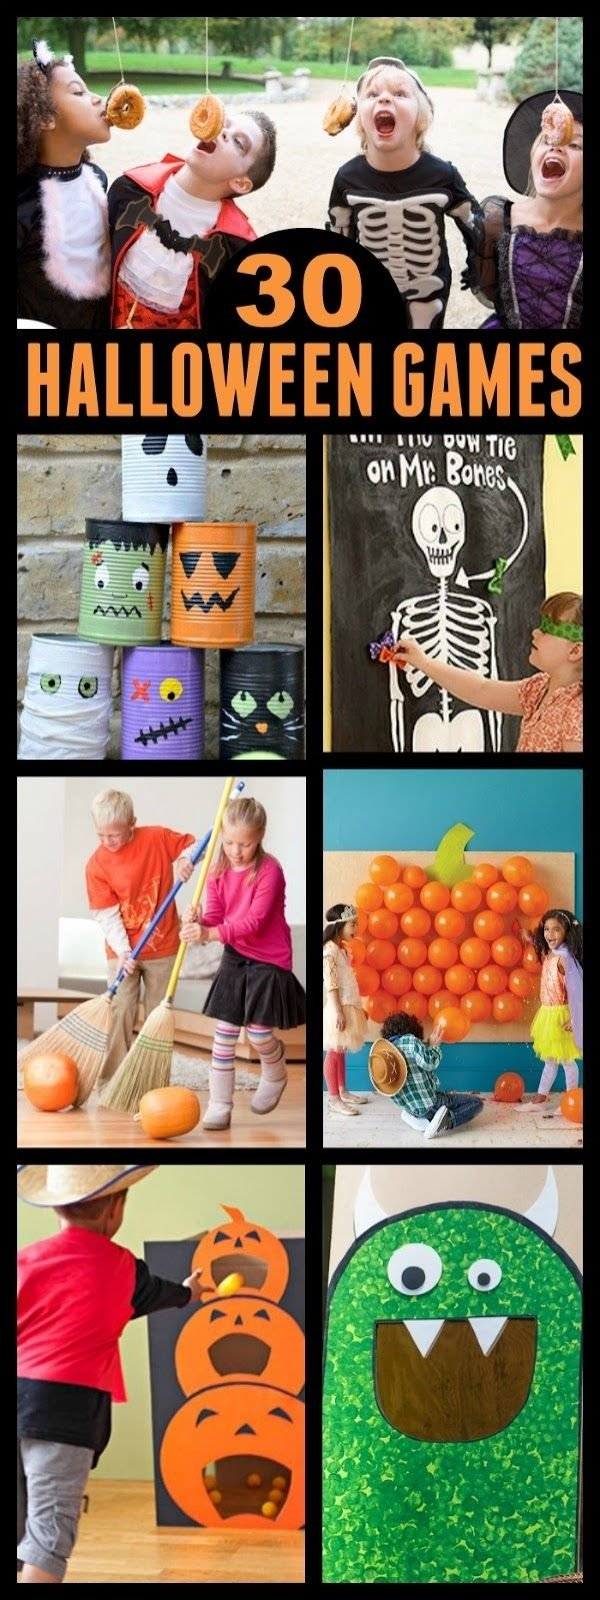 10 Great Kids Halloween Birthday Party Ideas 2019